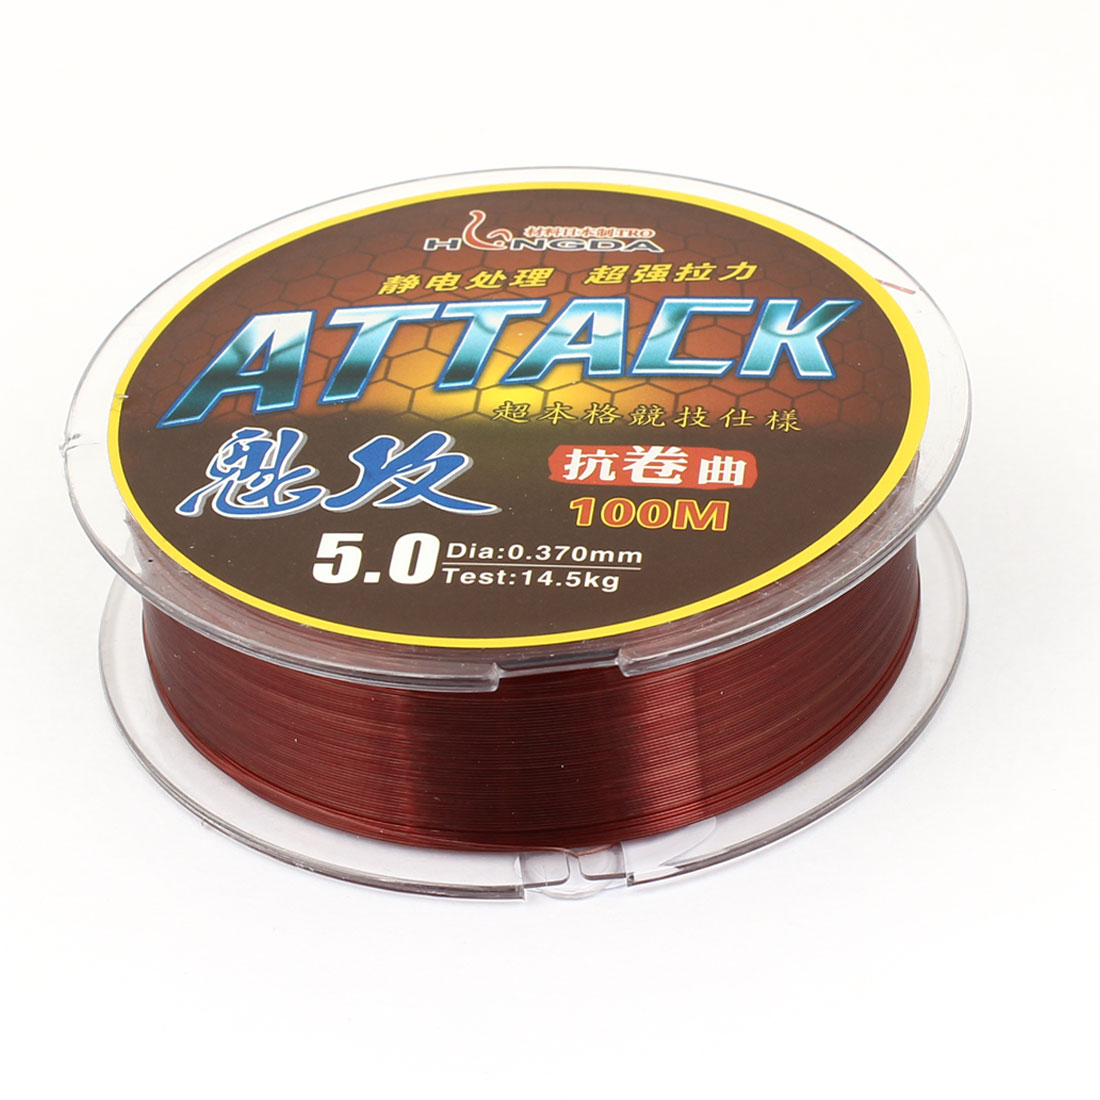 0.370mm Diameter 100M Thread 14.5Kg 31.9 lb Fishing Line Spool Brown